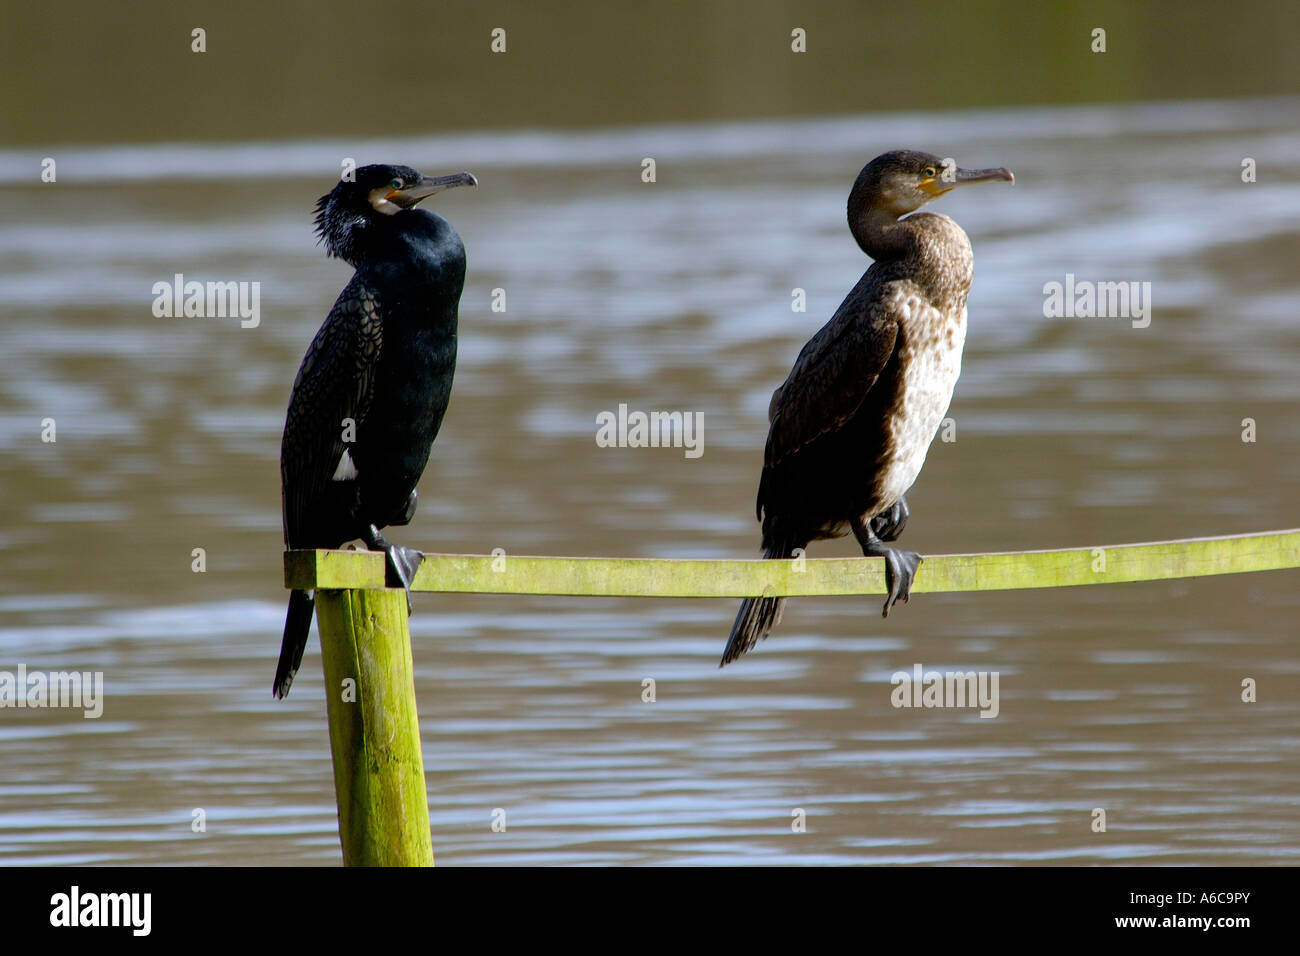 Two Cormorants Phalacrocorax carbo sitting on a wooden crossbeam one adult one juvenile both on one leg with left - Stock Image